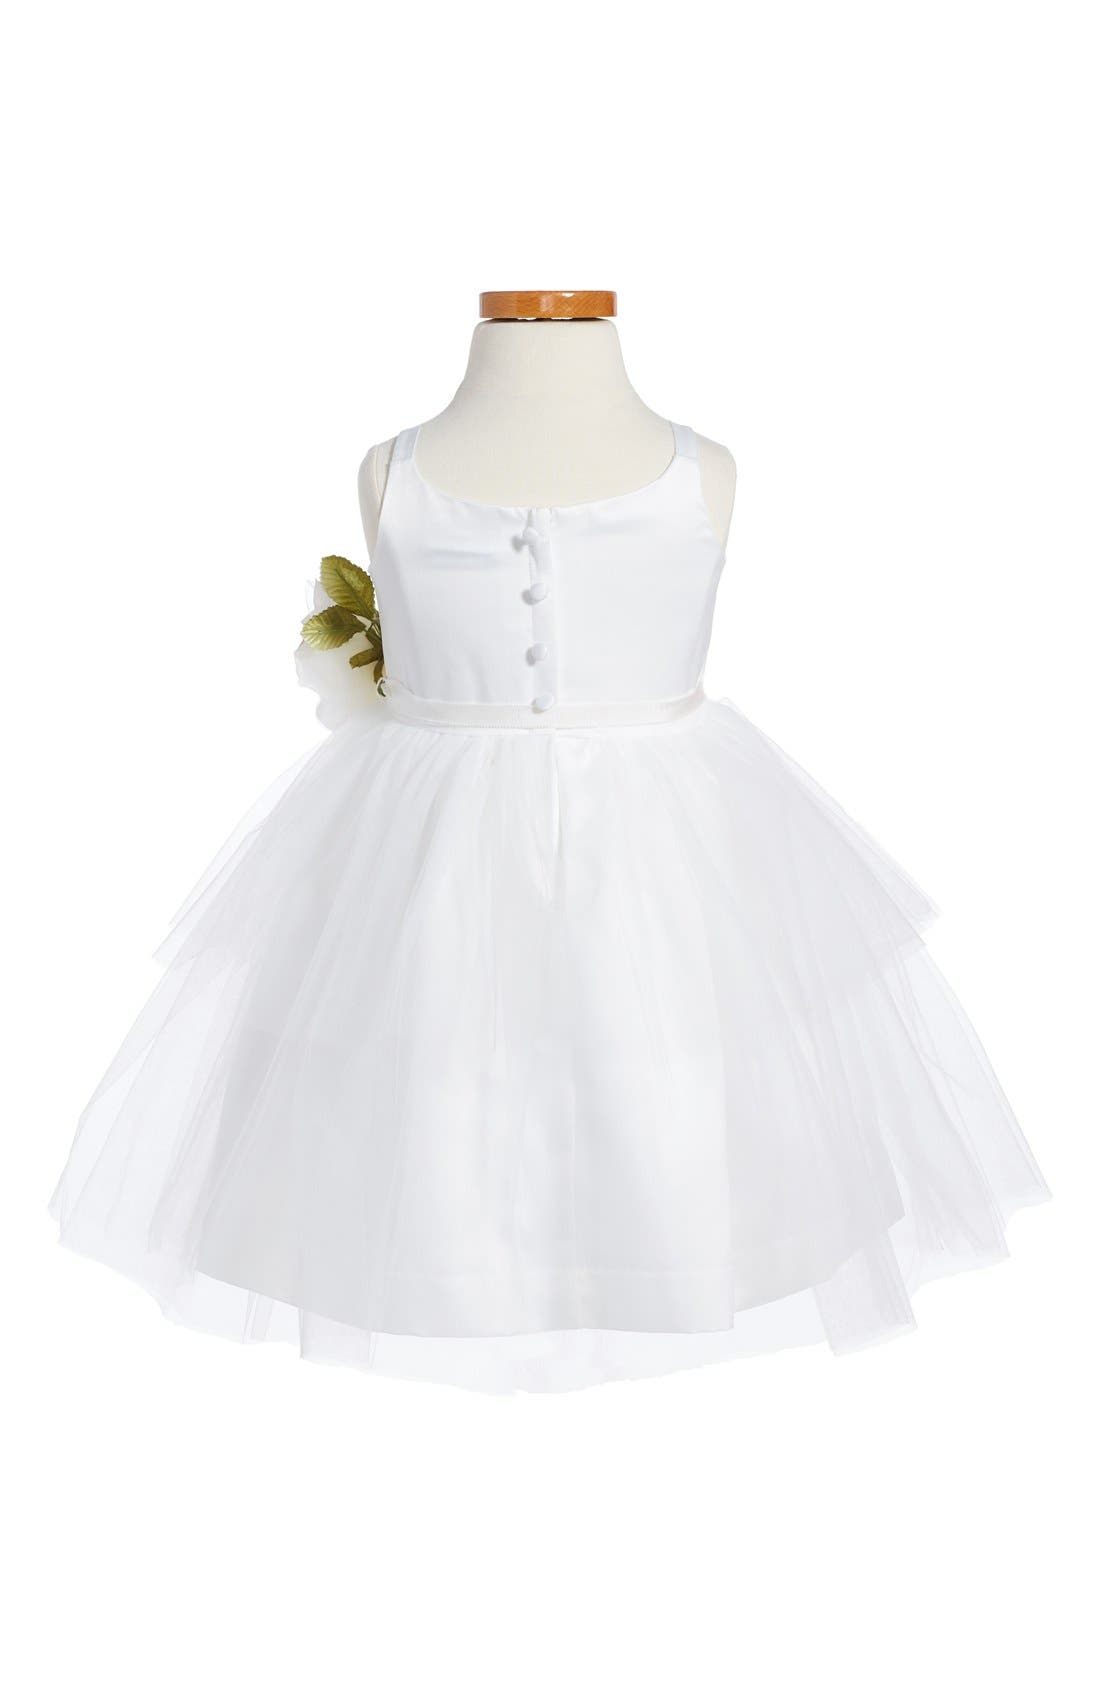 Tulle Ballerina Dress,                             Alternate thumbnail 3, color,                             IVORY